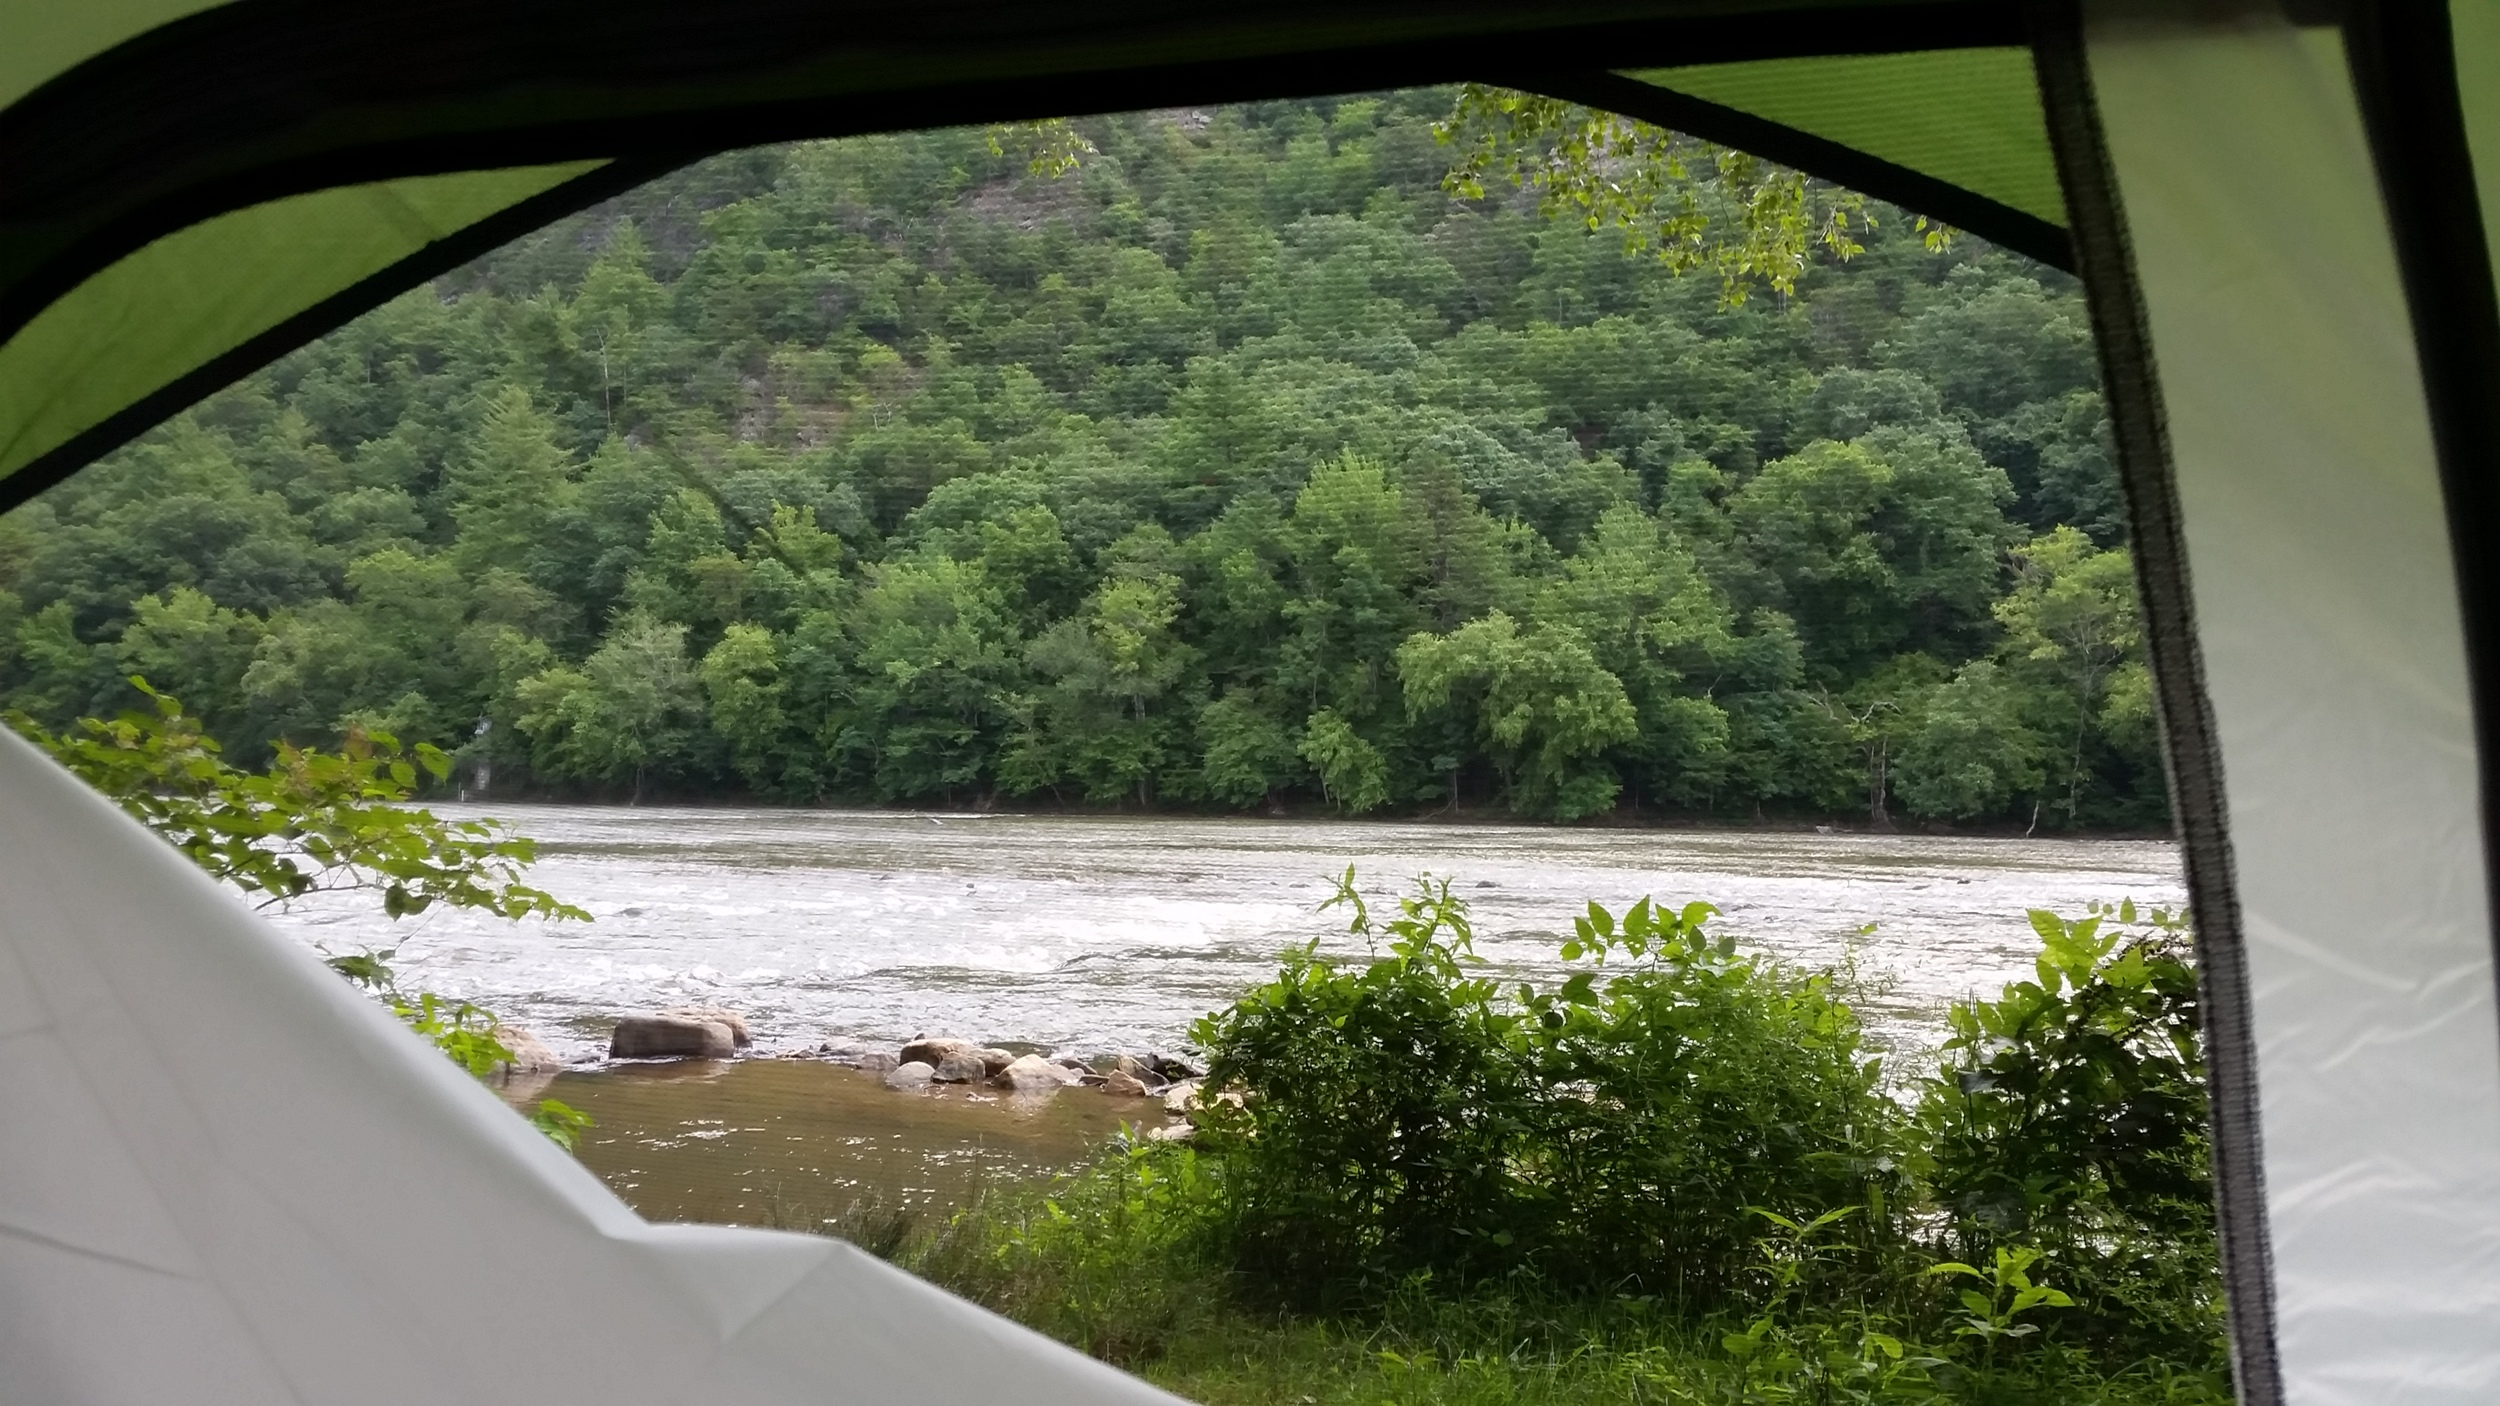 A tent with a view! Looking out on the French Broad River in Hot Springs, NC.